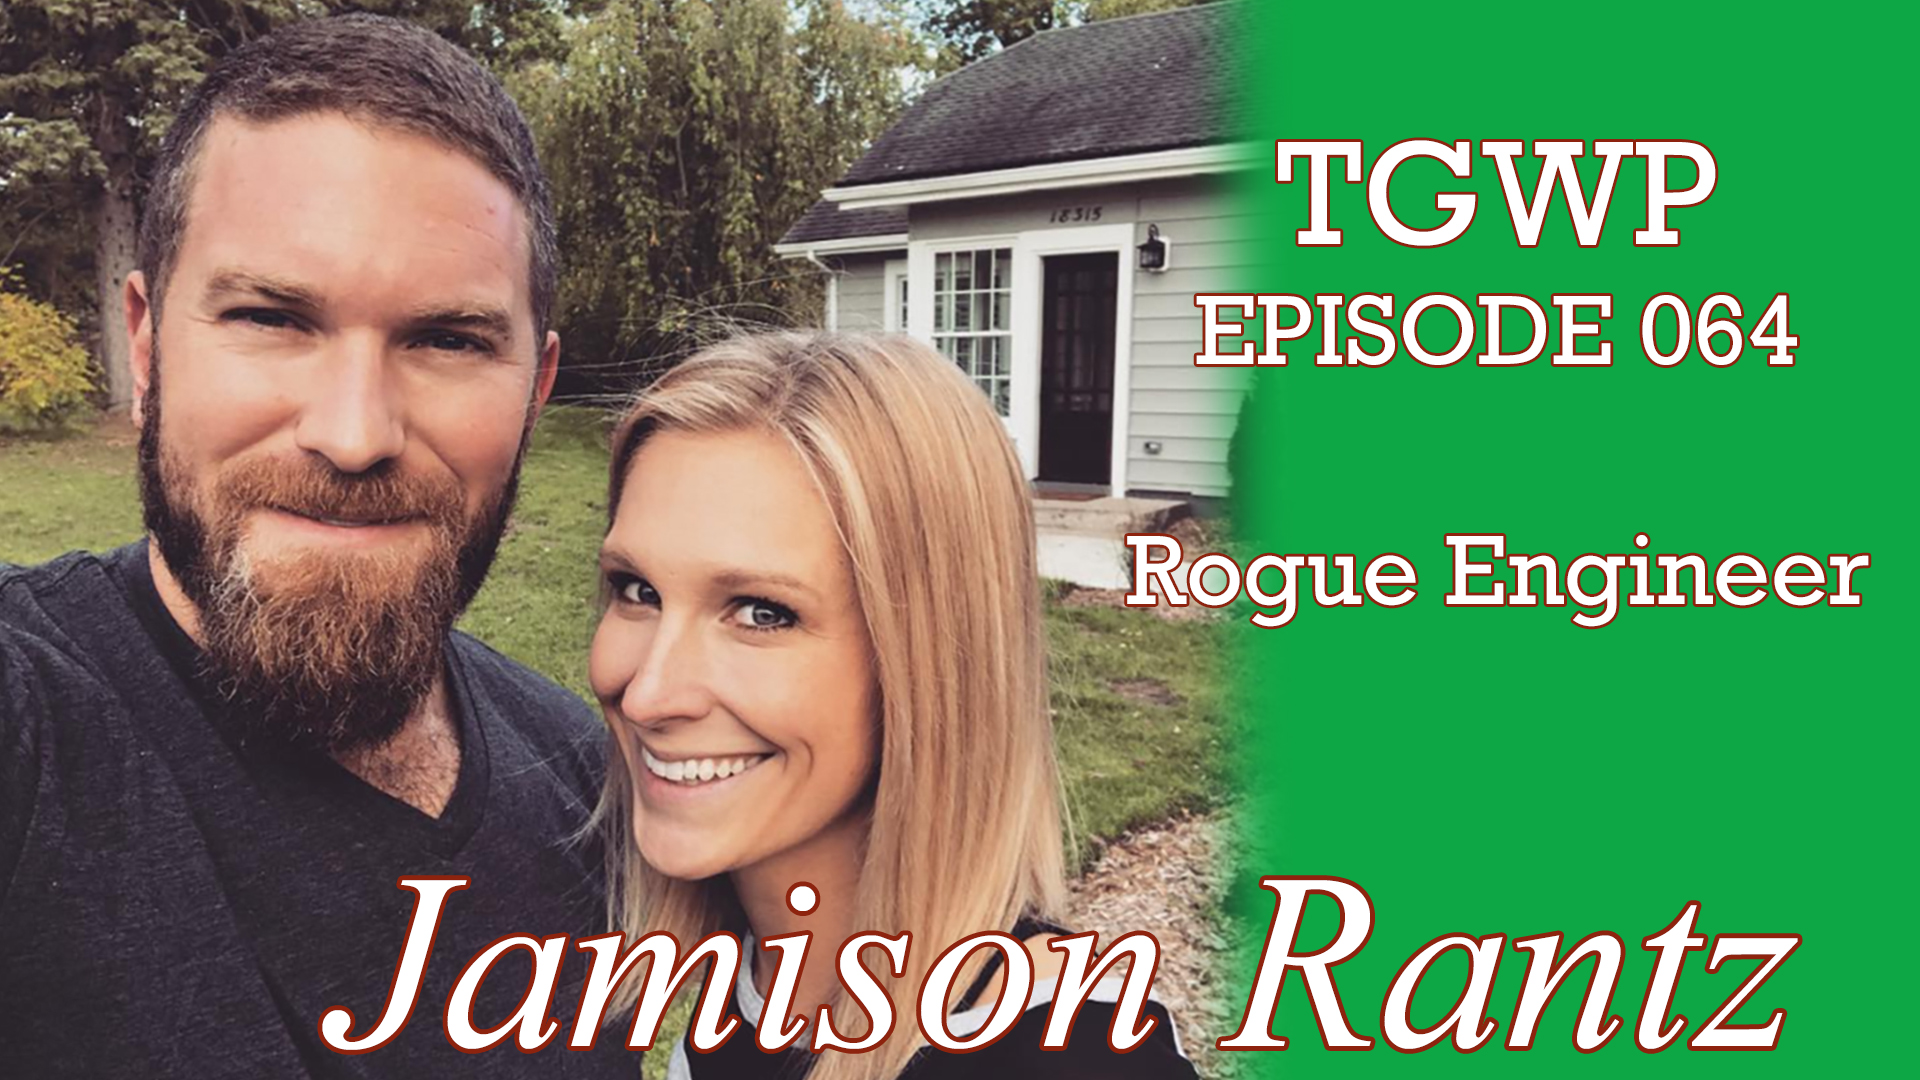 TGWP Episode 064 Jamison Rantz- Rogue Engineer